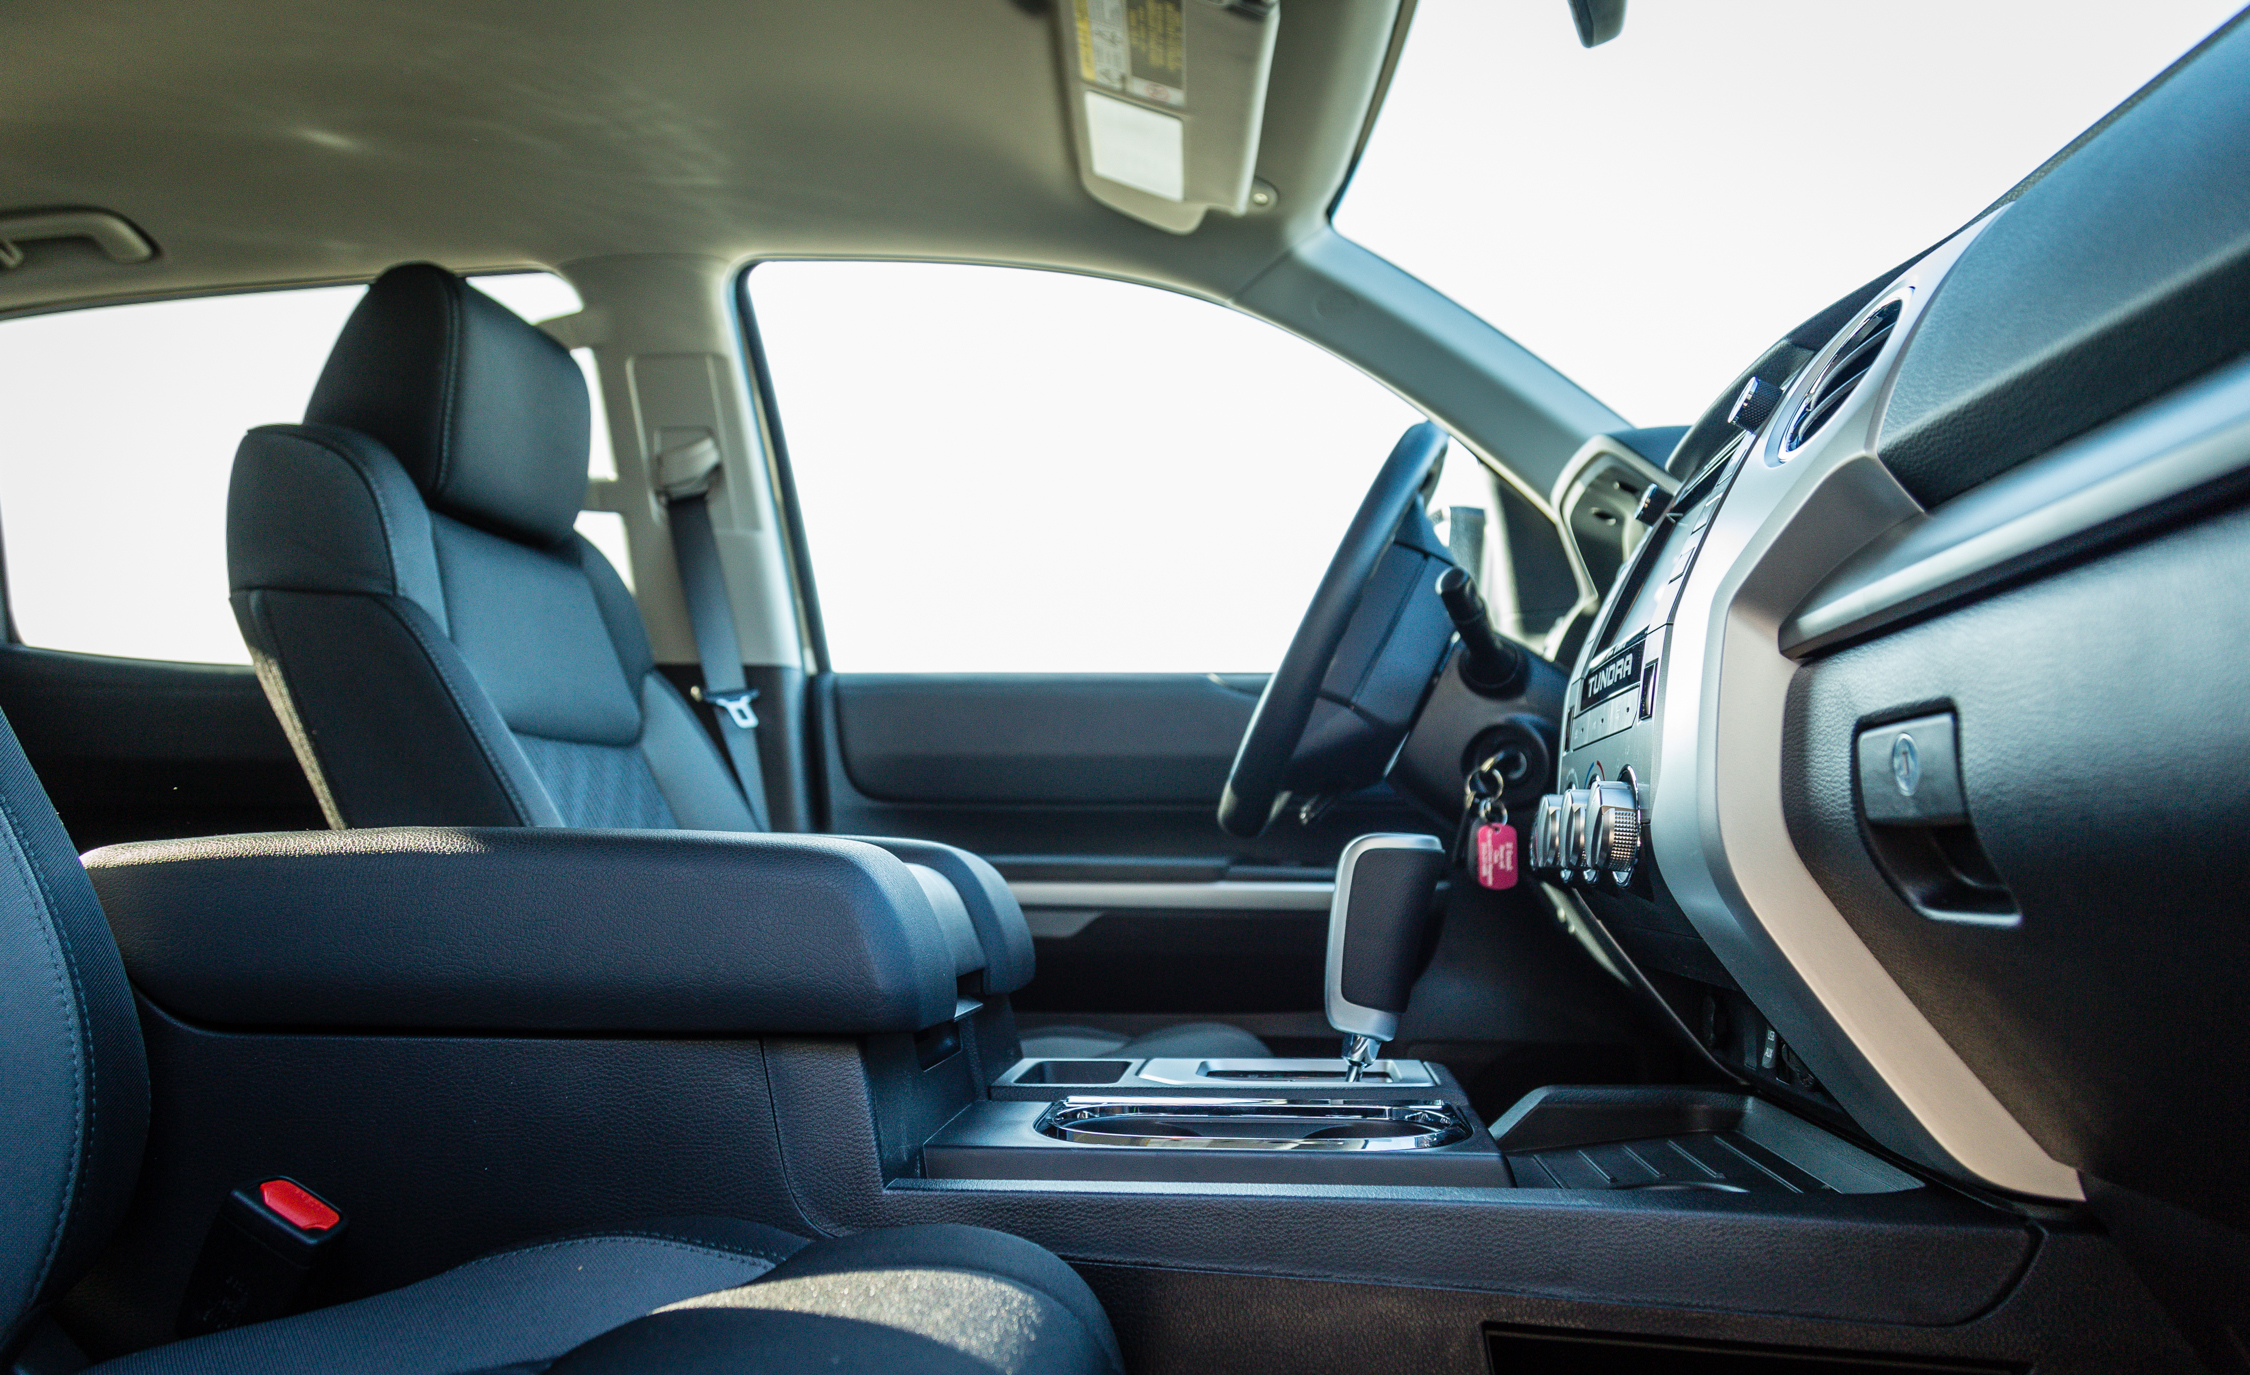 2017 Toyota Tundra Interior Seats Driver (View 17 of 24)